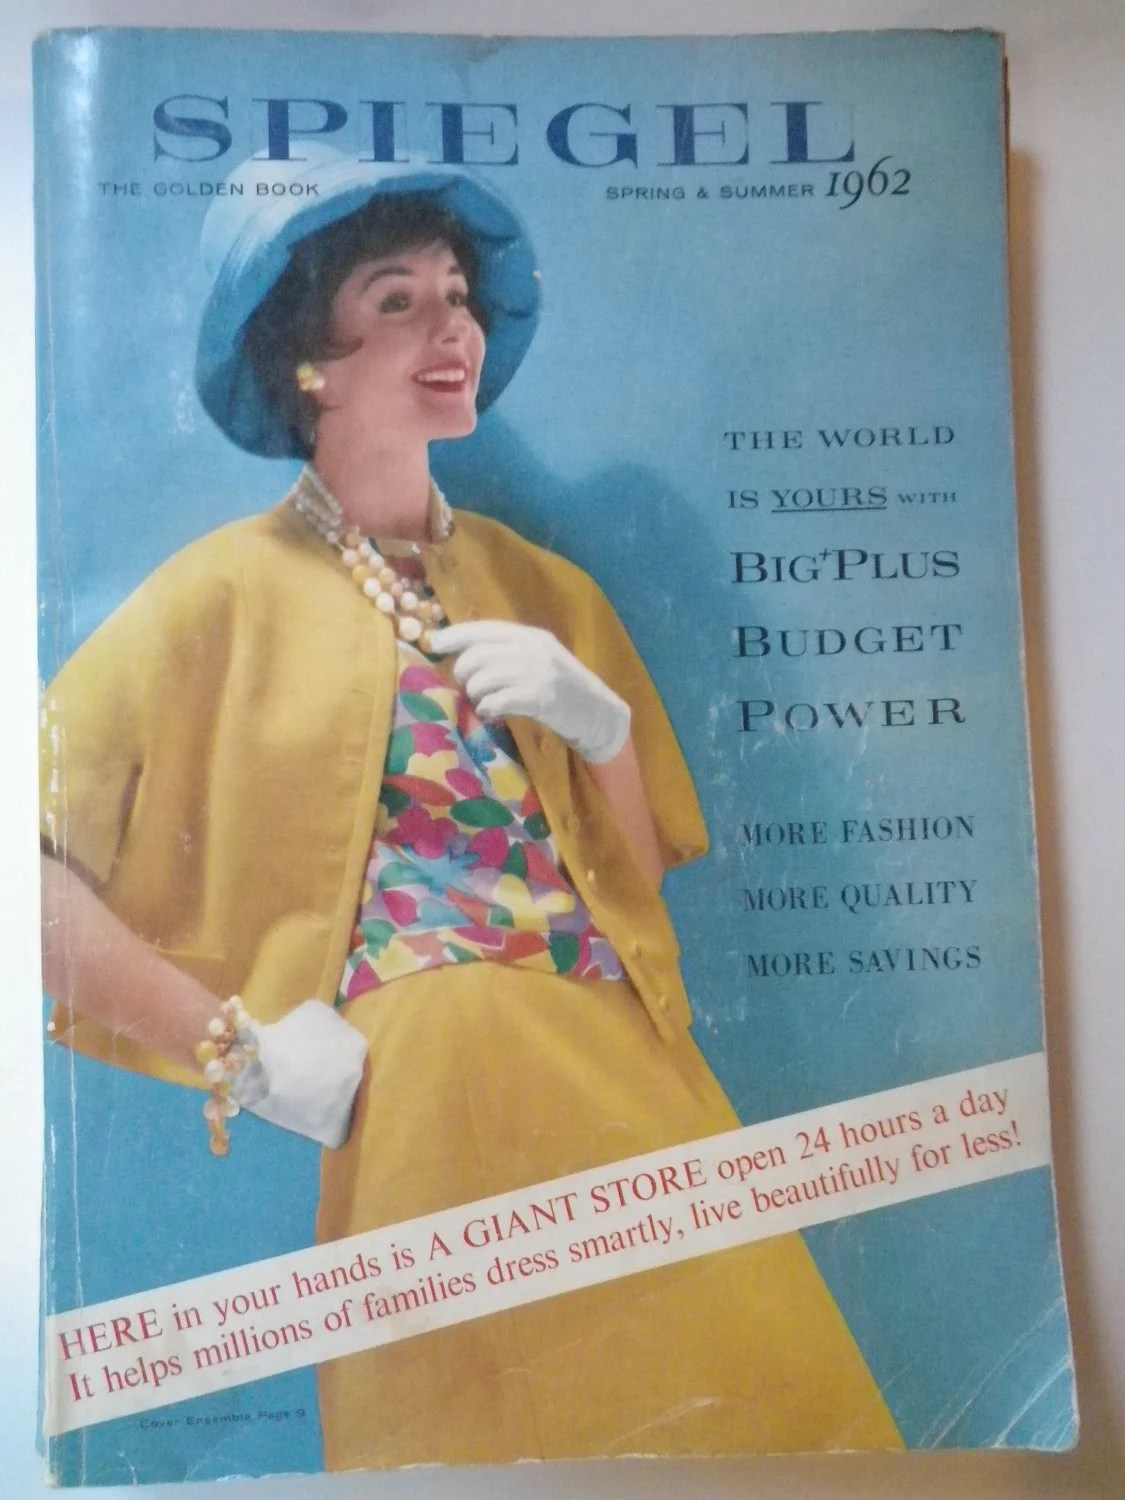 Spiegel 24 60s Clothing Catalog Spiegel 60s 1962 Dresses Lingerie Furniture Barbie Doll Bomb Shelter